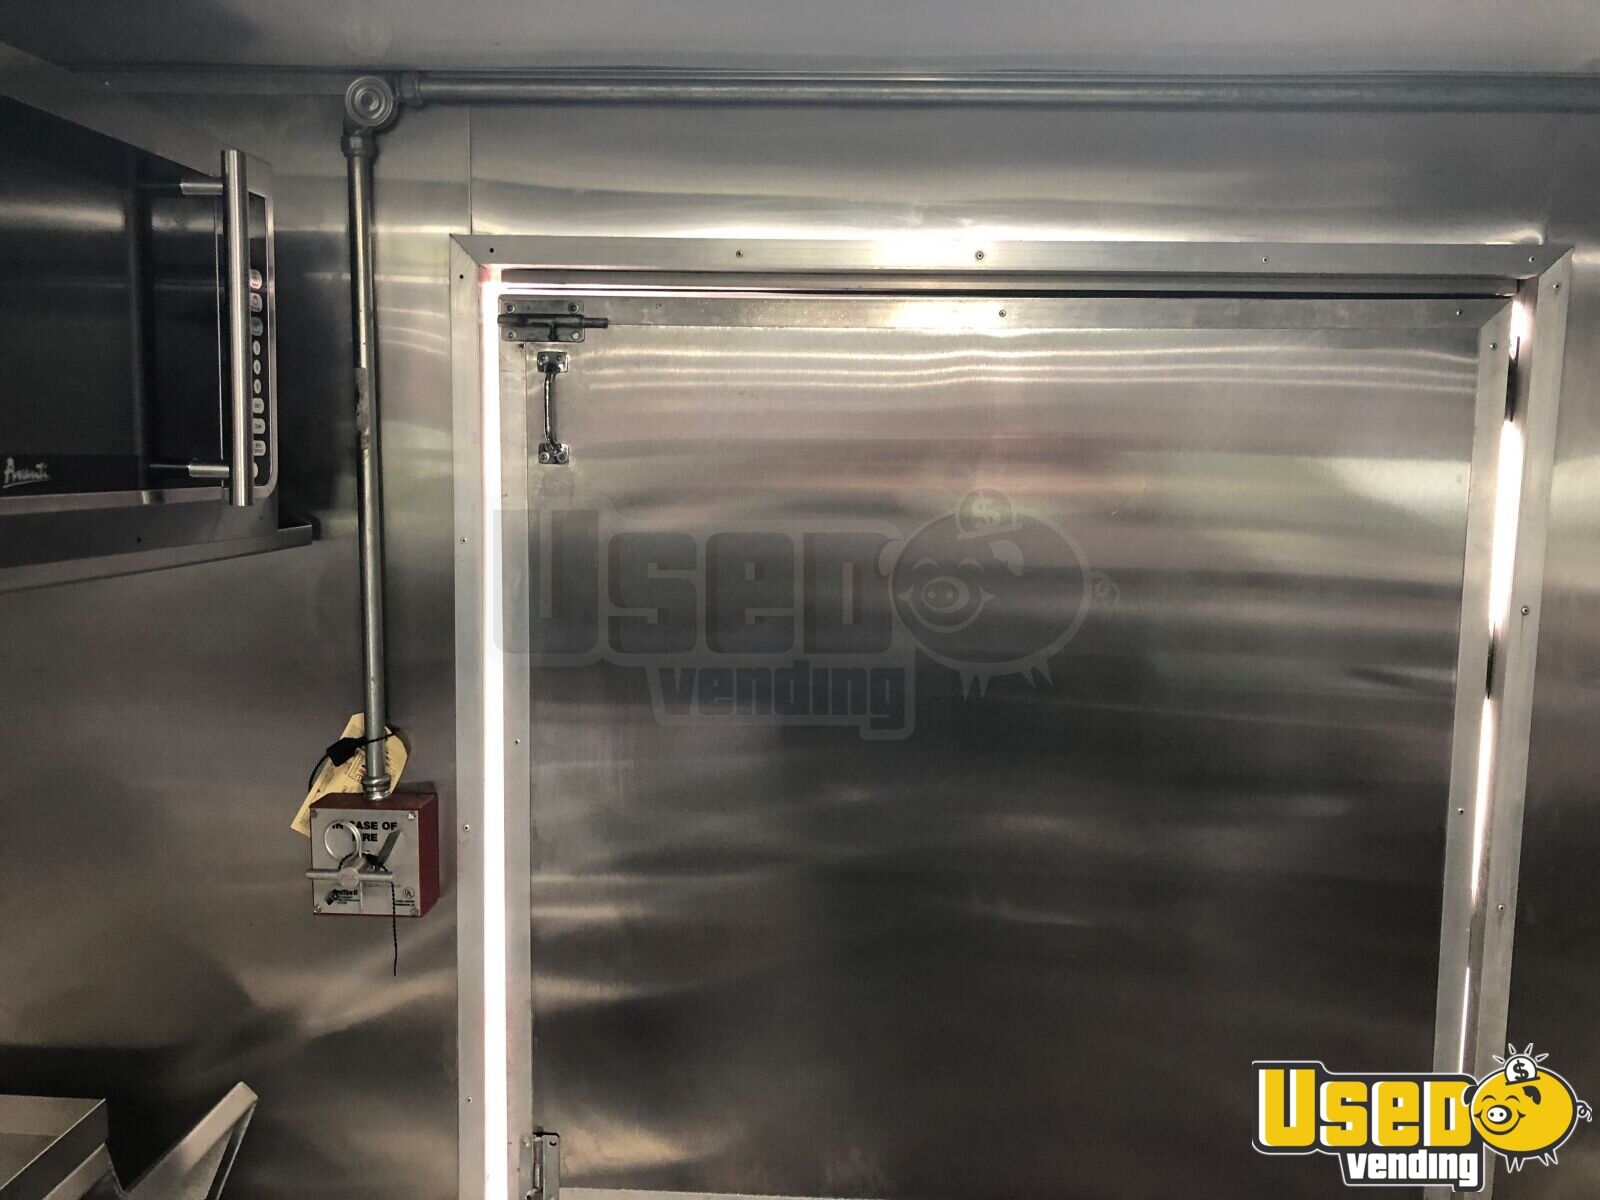 1999 Chevrolet P30 Step Van Food Truck Interior Lighting Connecticut Diesel Engine for Sale - 22